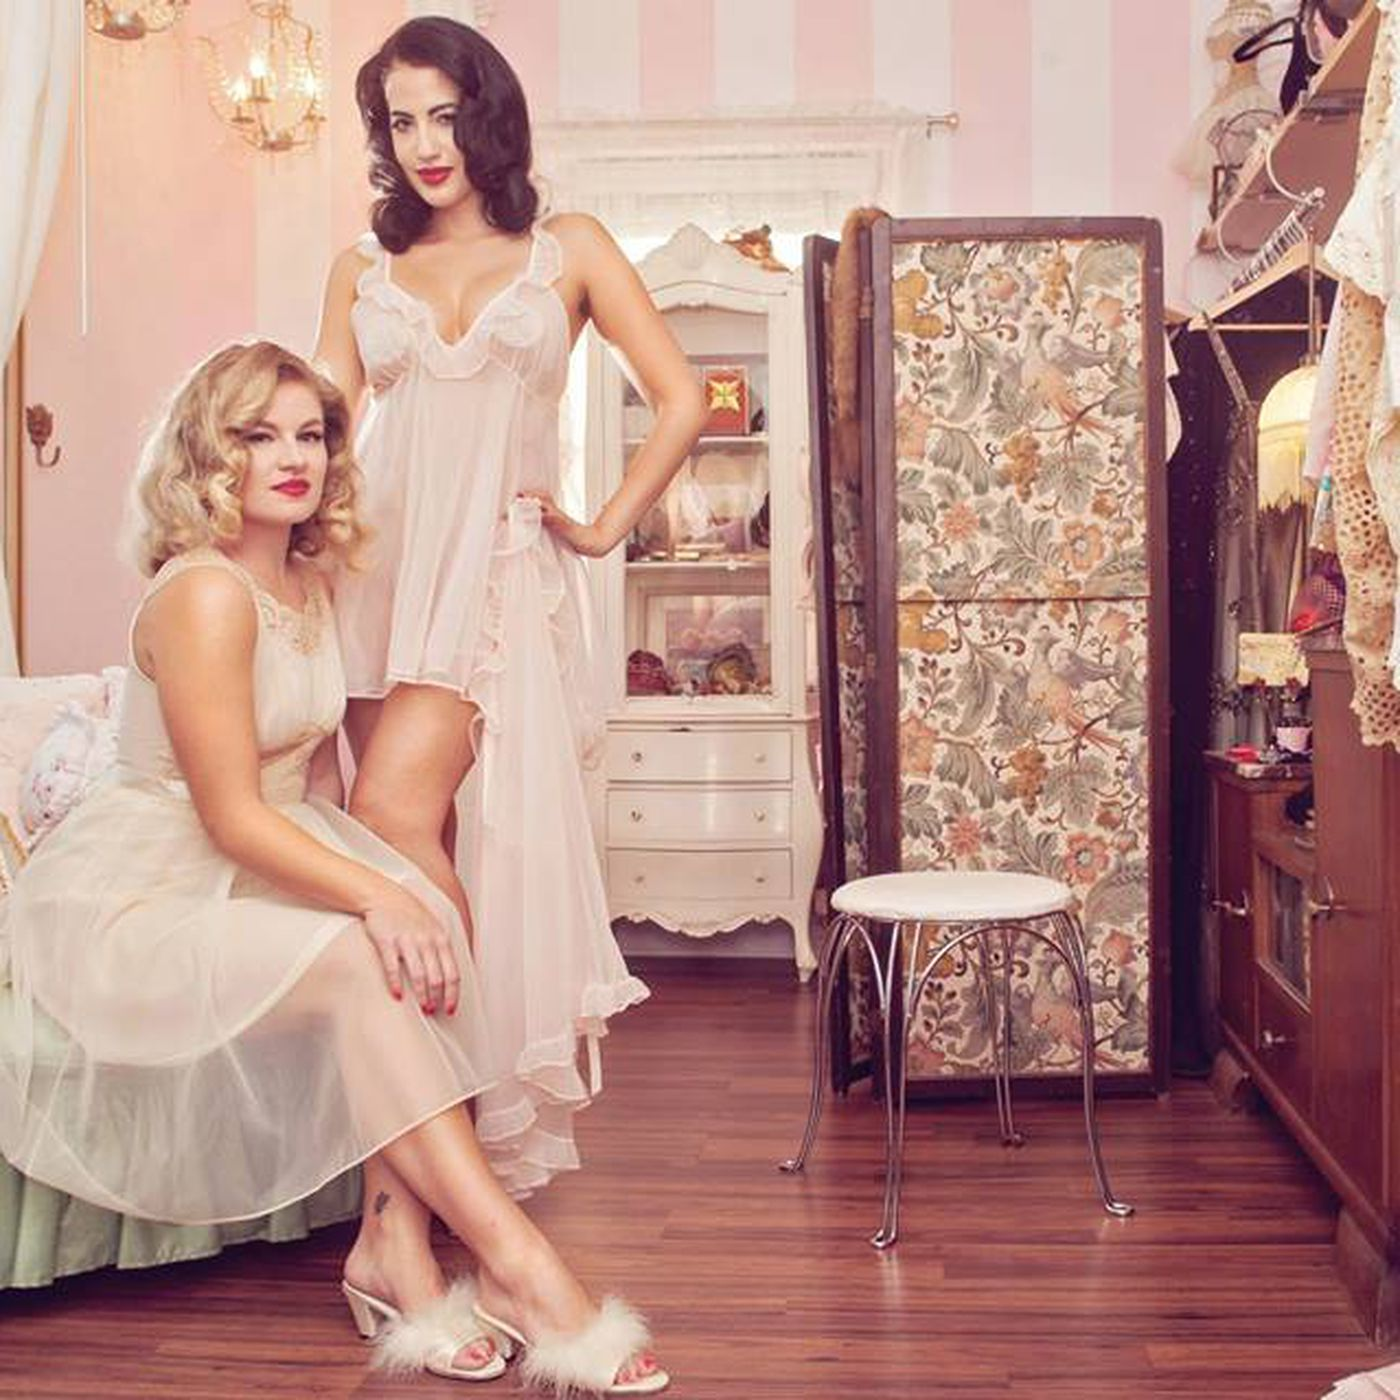 Miami's Best Vintage and Consignment Shops - Racked Miami